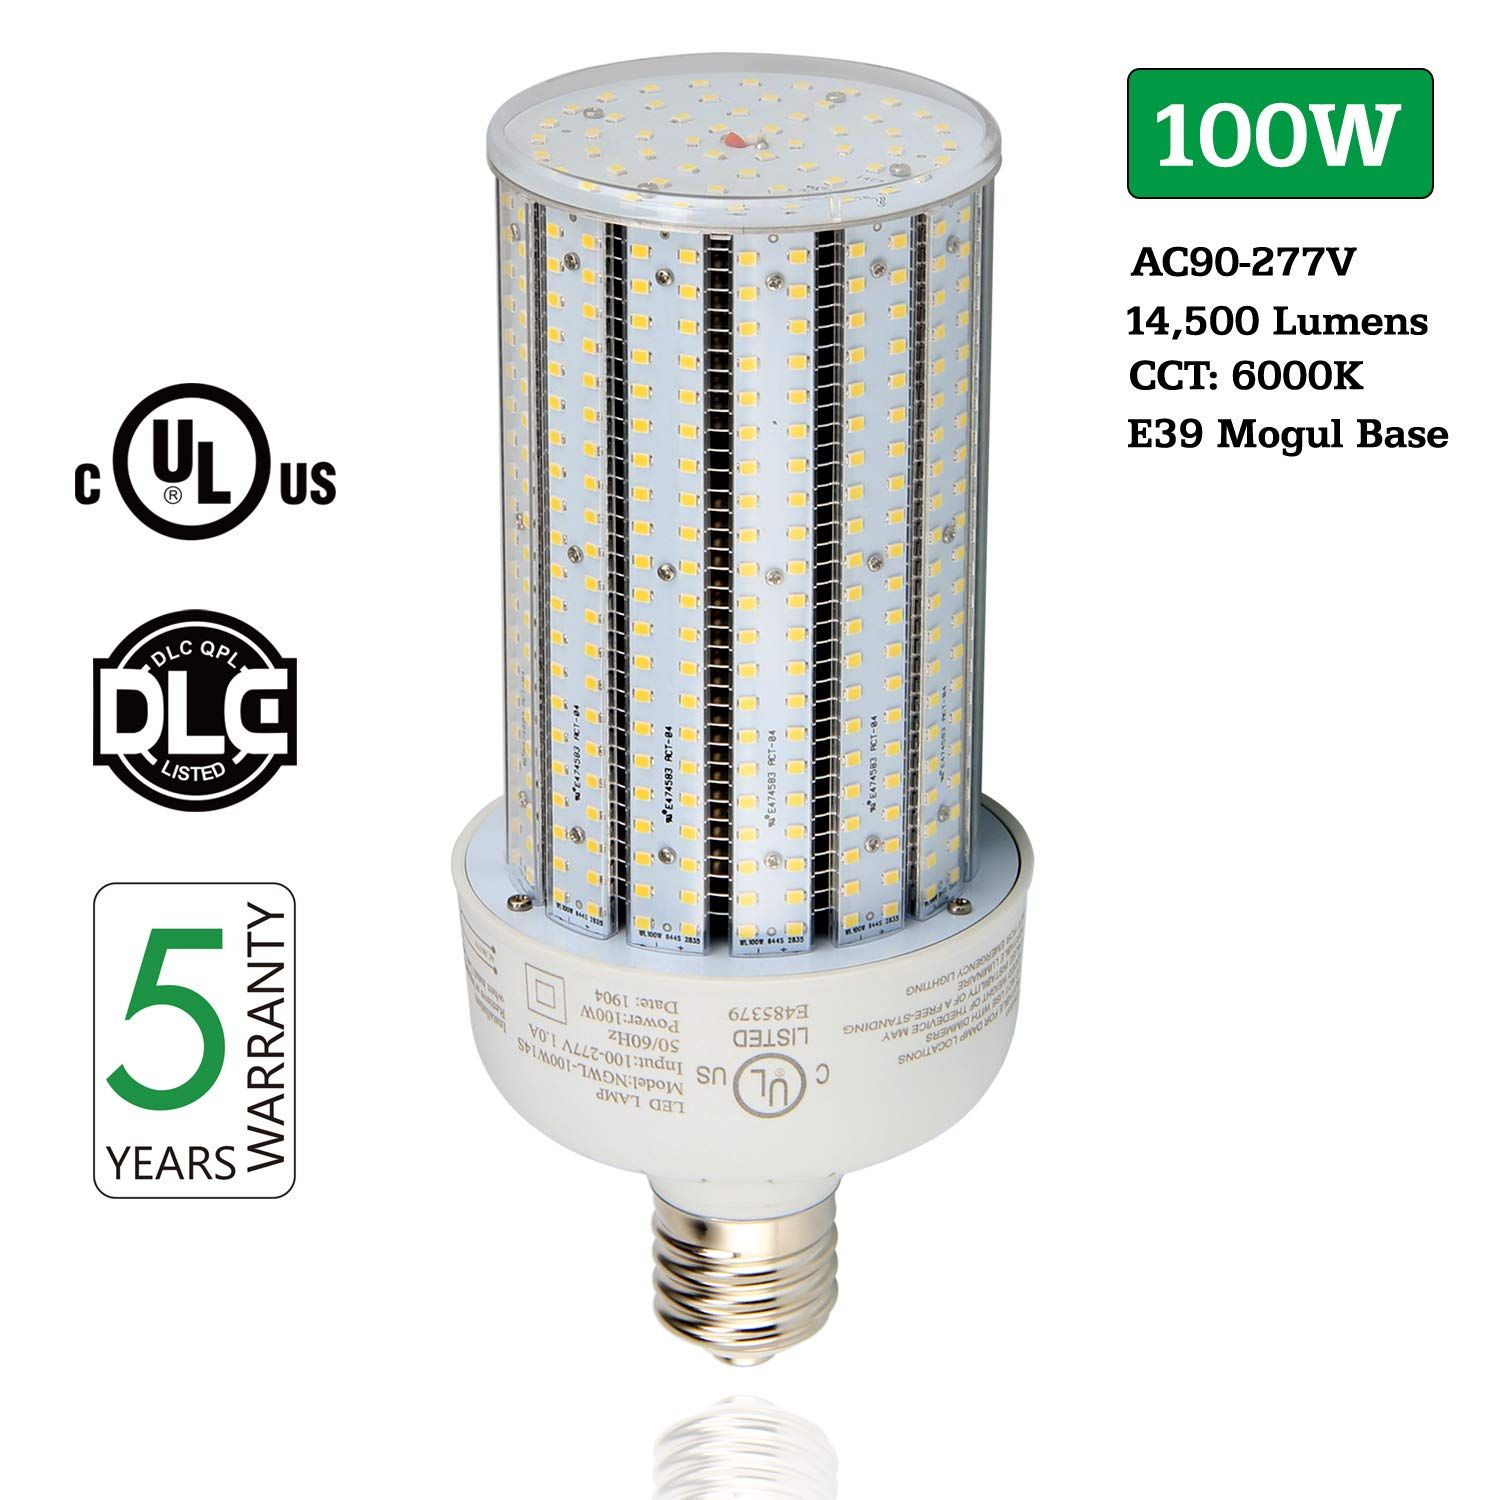 Led Corn Light Bulb 100w 14500lm 6000k Cool White Corn Led Bulbs Ac90 277v E39 Mogul Base Replace 400w Hps Hid Metal Halide Lamp Fo Led Bulb Bulb Light Bulb